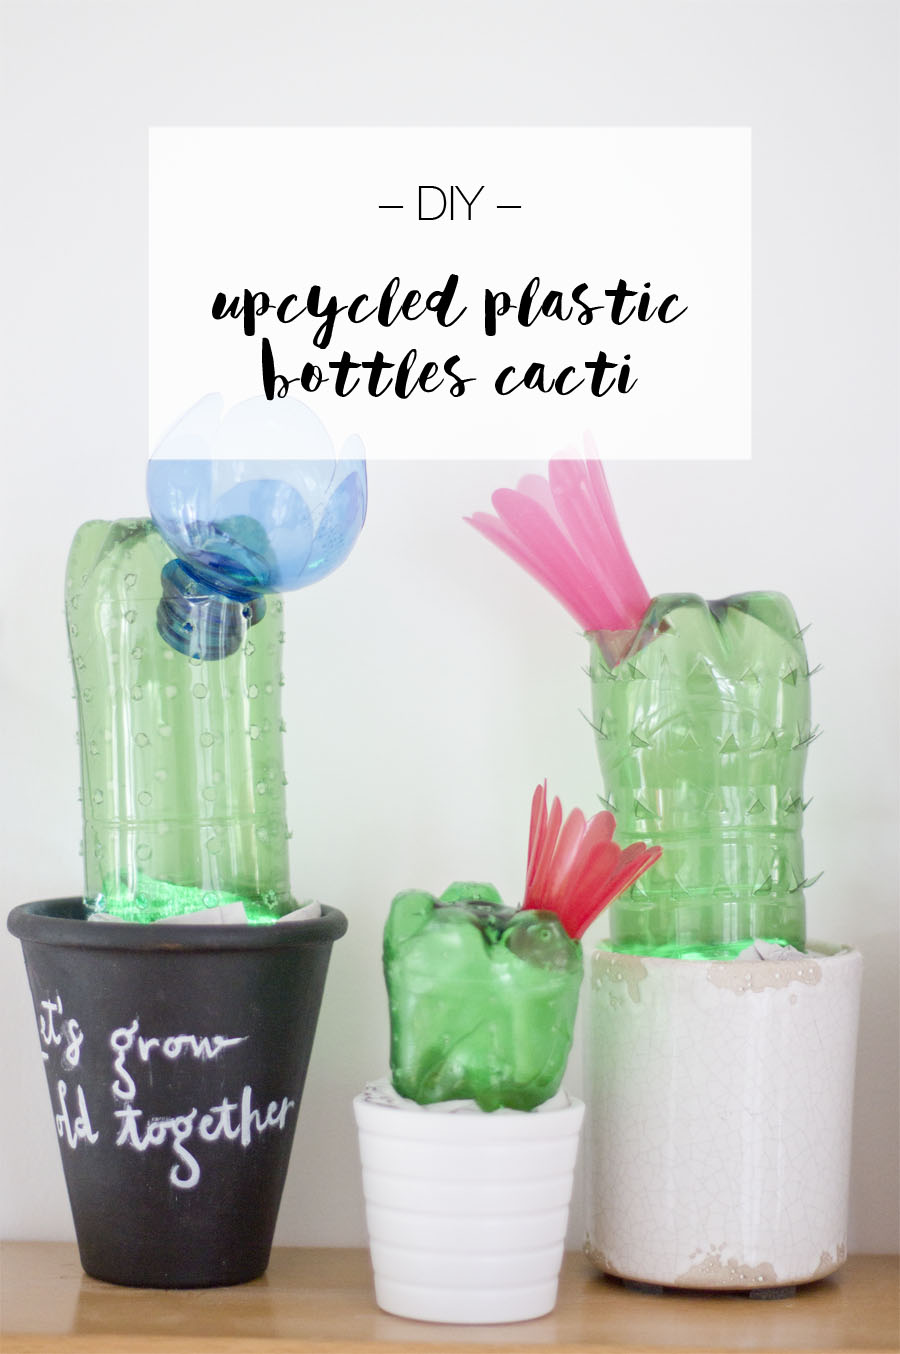 What is made of a plastic bottle